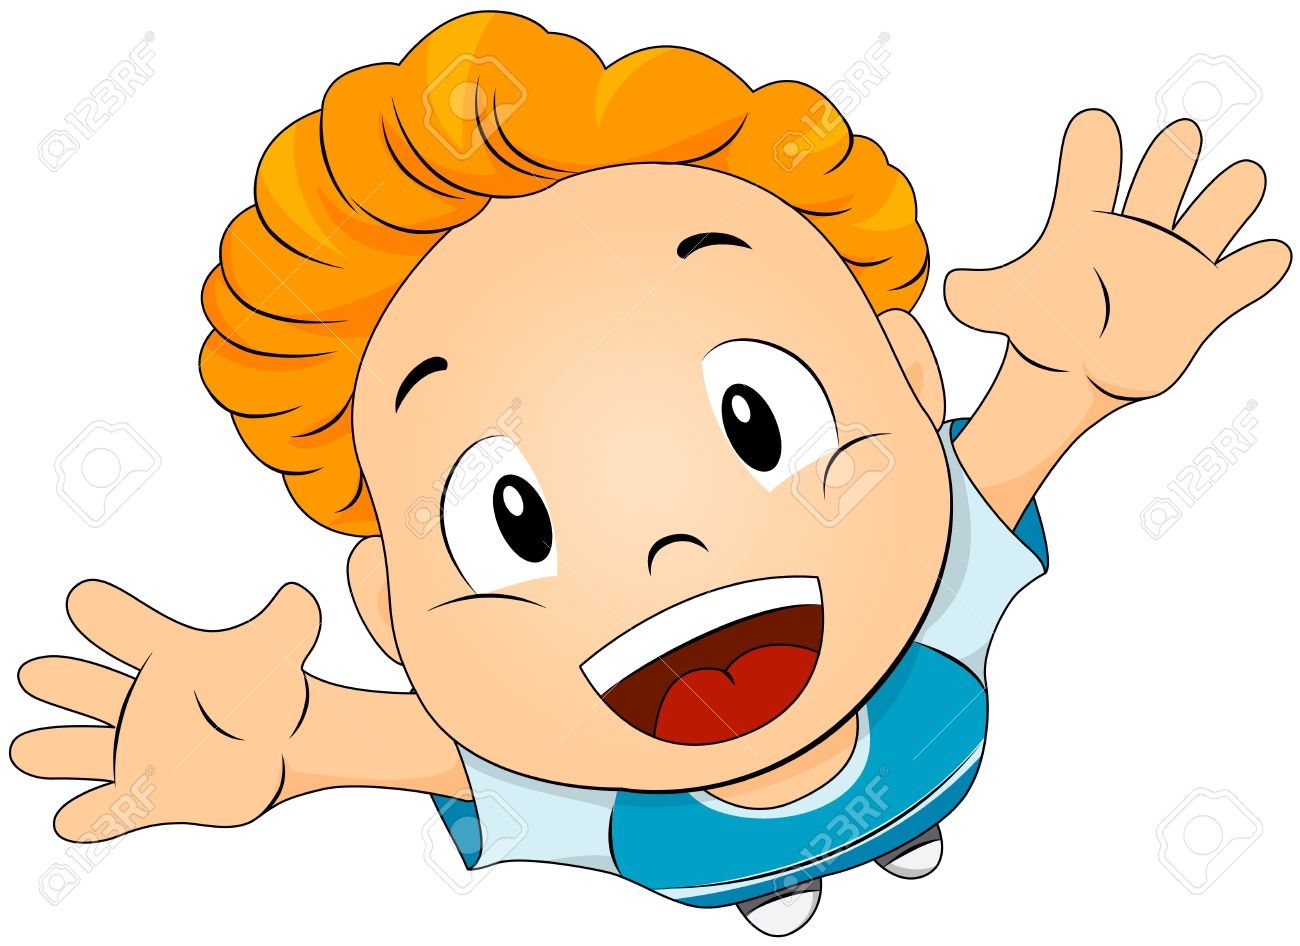 Child looking up clipart.